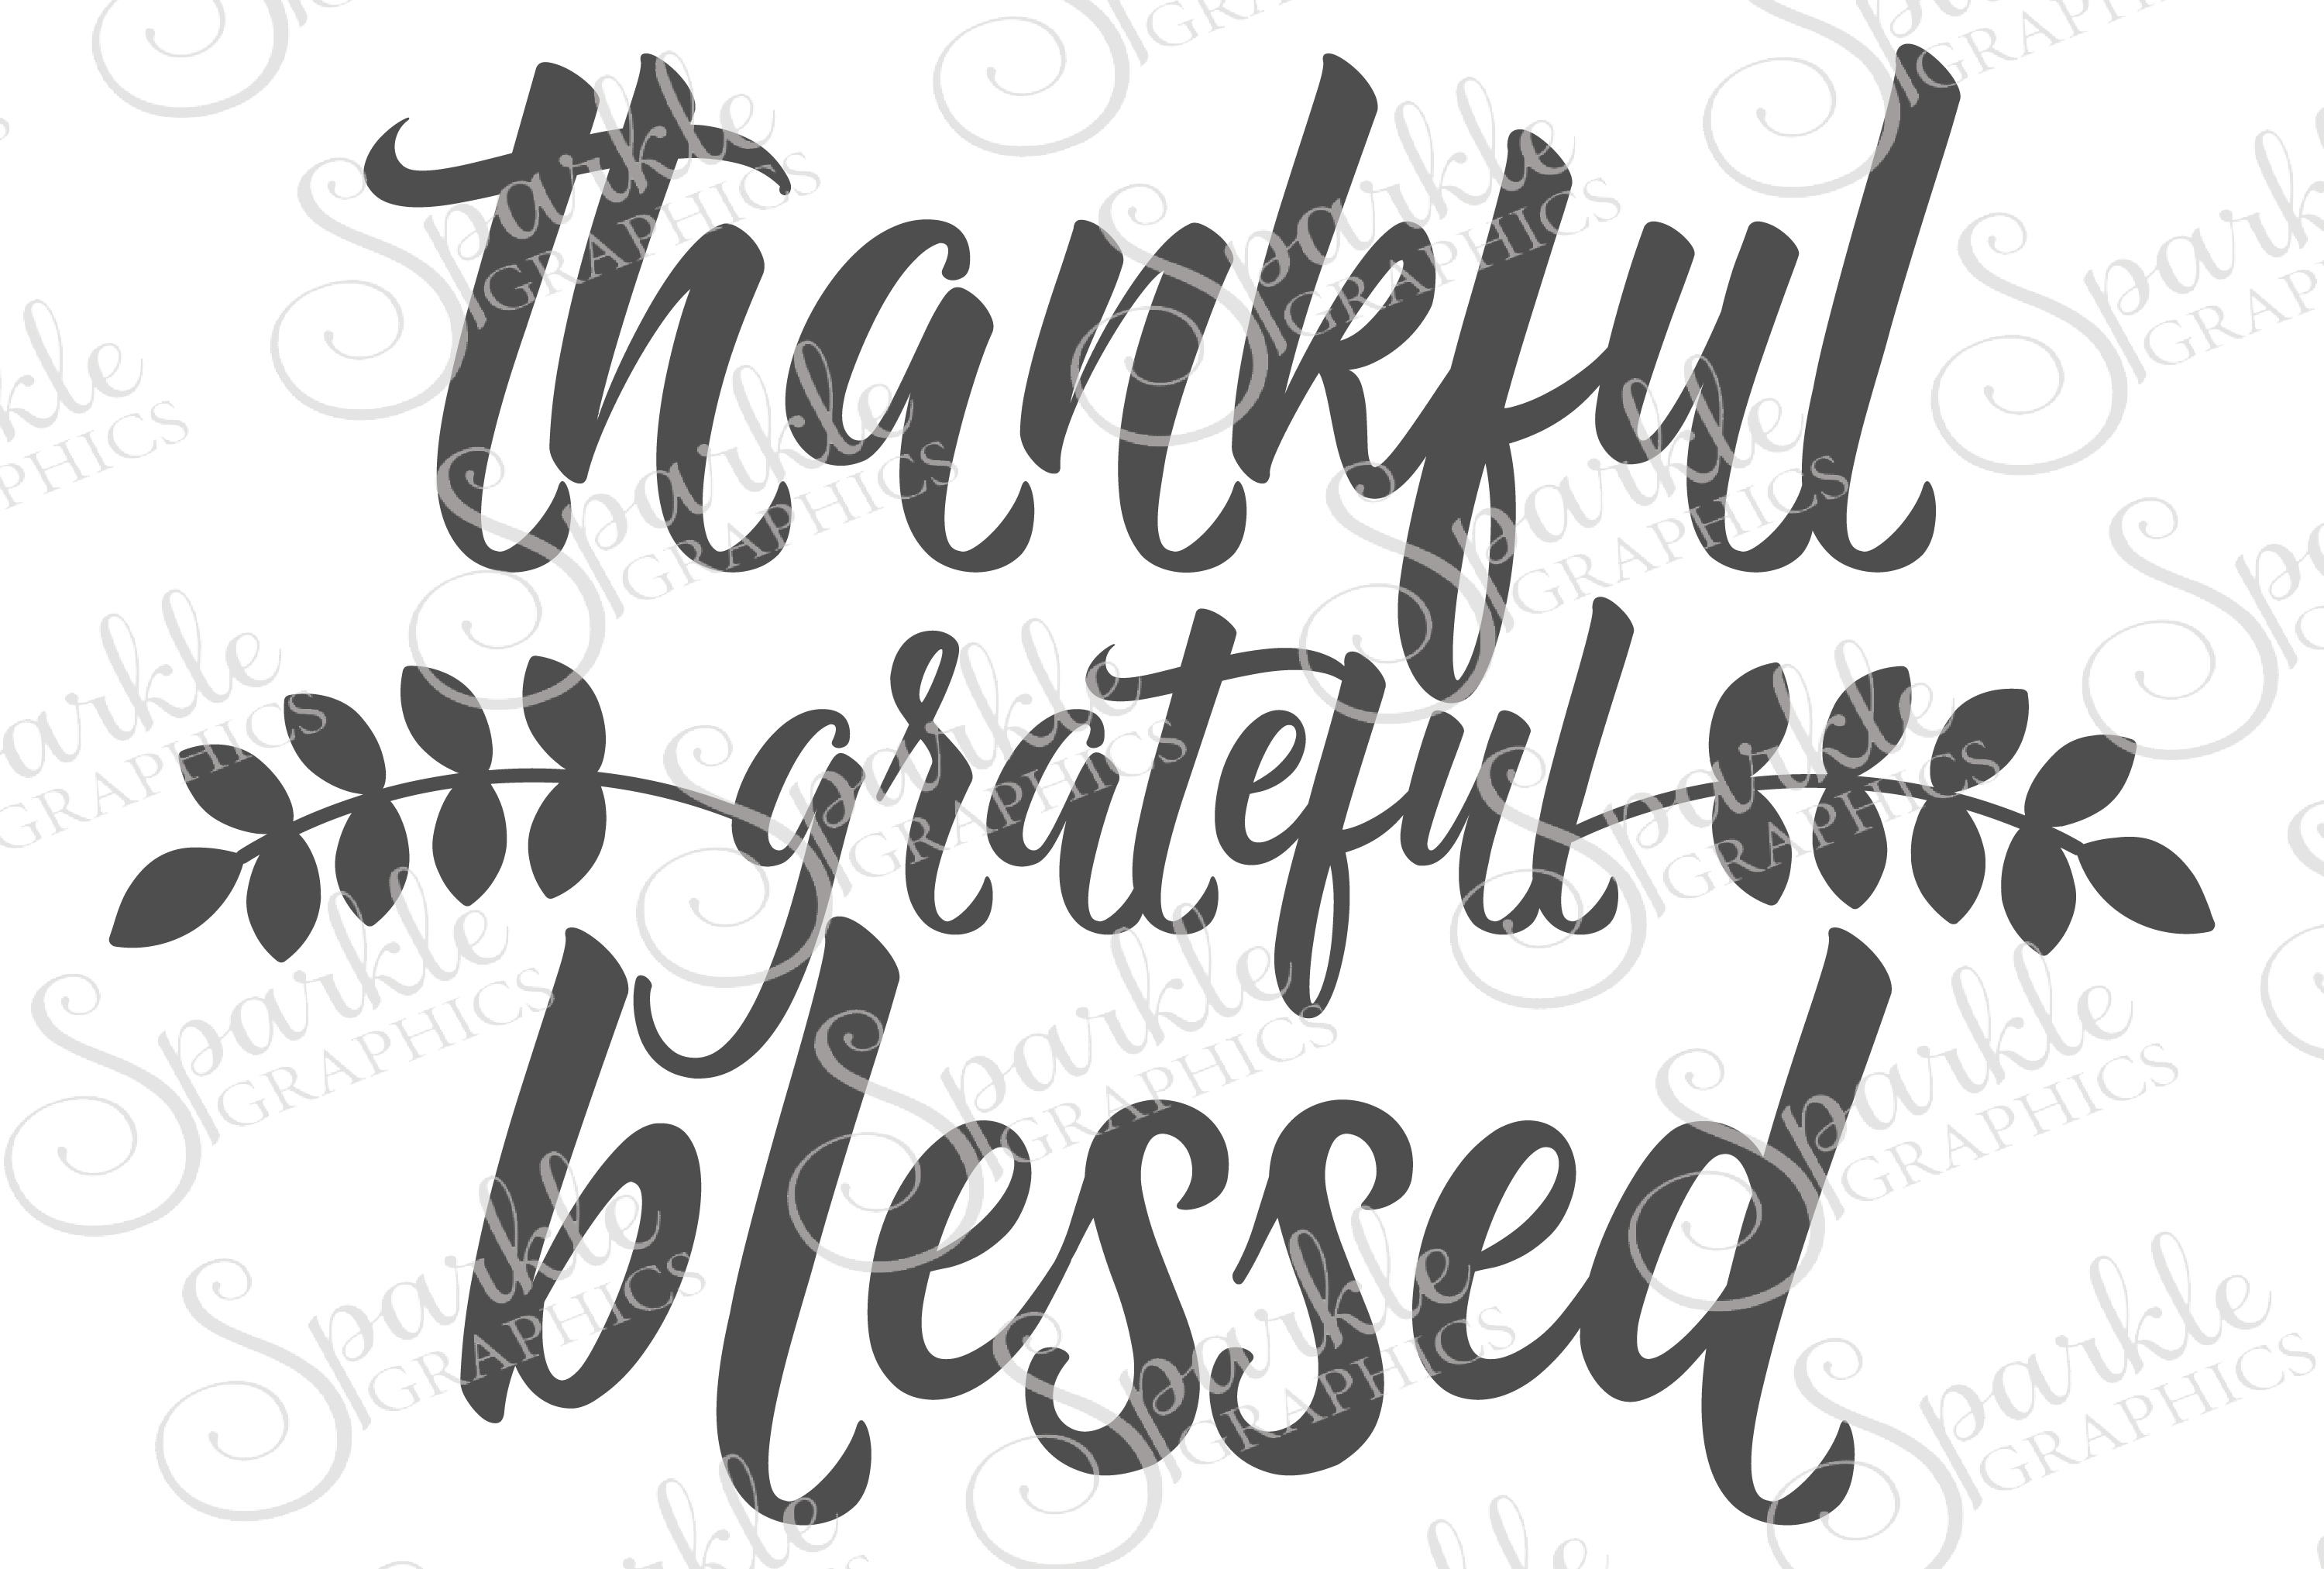 Thankful Grateful Blessed Cut File Set 275476 Png Images Pngio